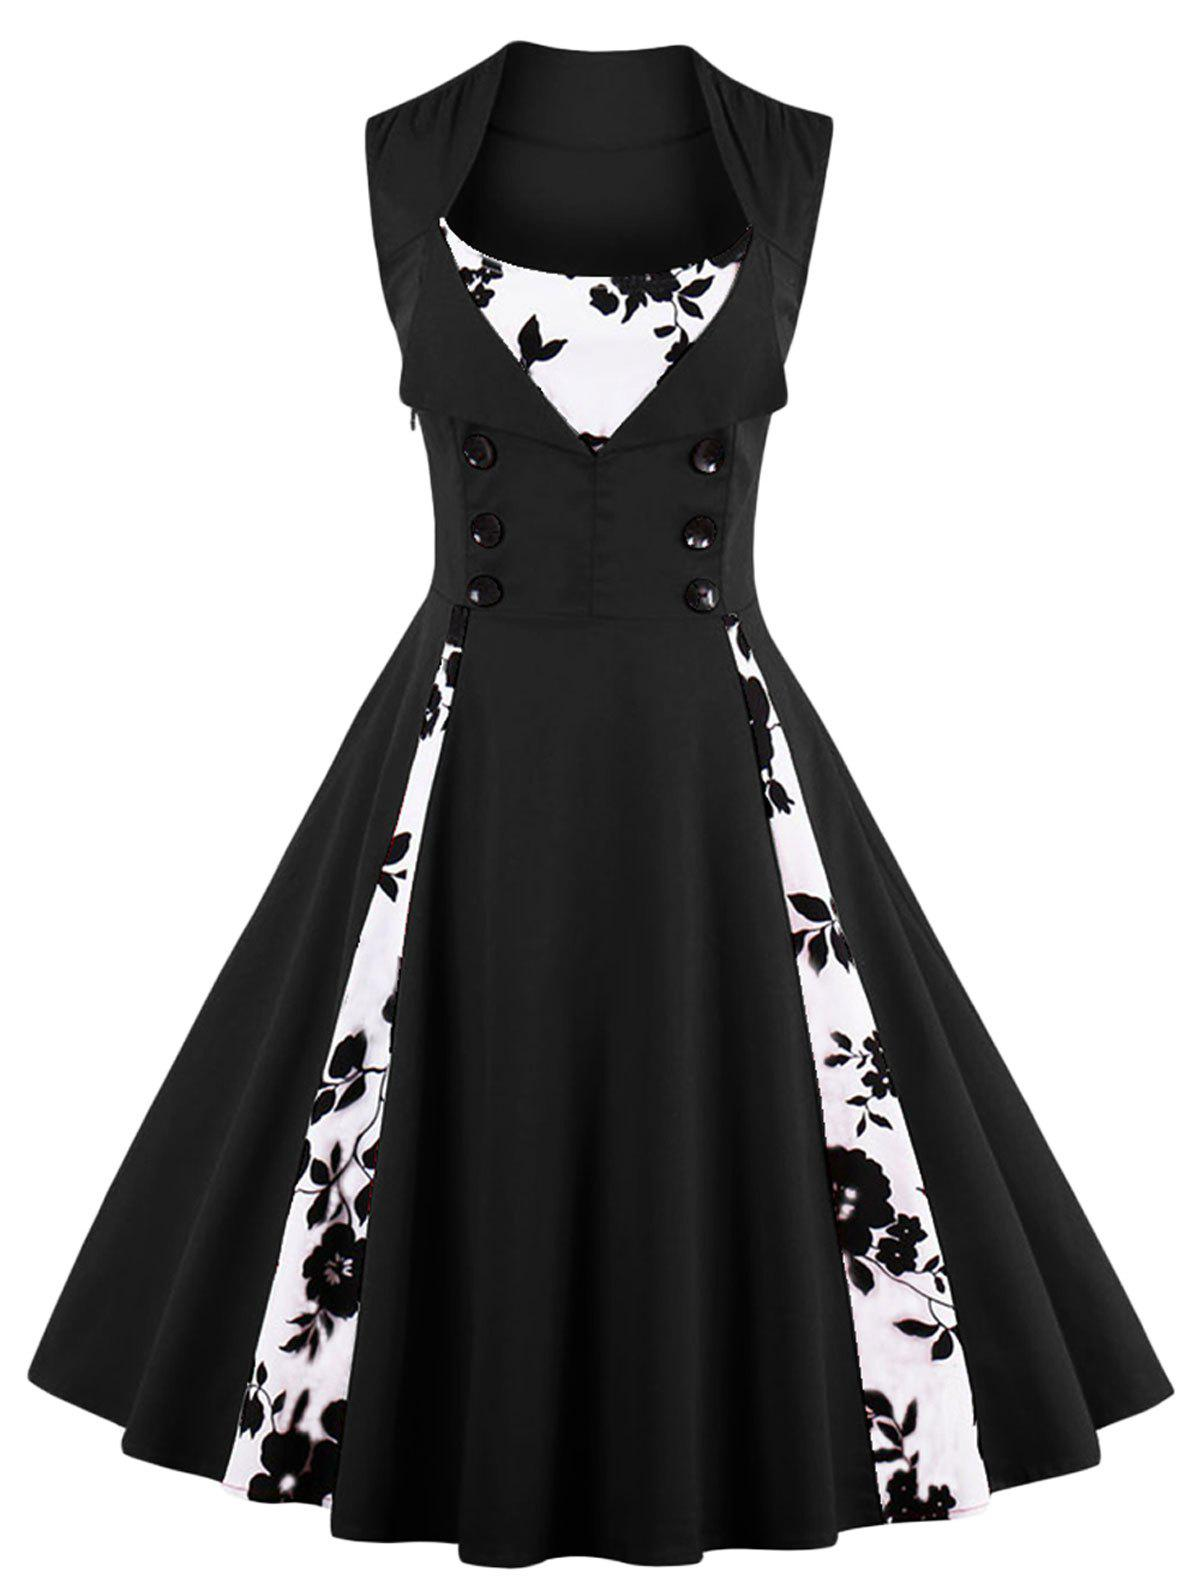 Vintage Floral Prom Swing DressWOMEN<br><br>Size: XL; Color: BLACK; Style: Vintage; Material: Cotton,Polyester; Silhouette: A-Line; Dresses Length: Knee-Length; Neckline: Scoop Neck; Sleeve Length: Sleeveless; Pattern Type: Floral; With Belt: No; Season: Fall,Spring,Summer; Weight: 0.4000kg; Package Contents: 1 x Dress;